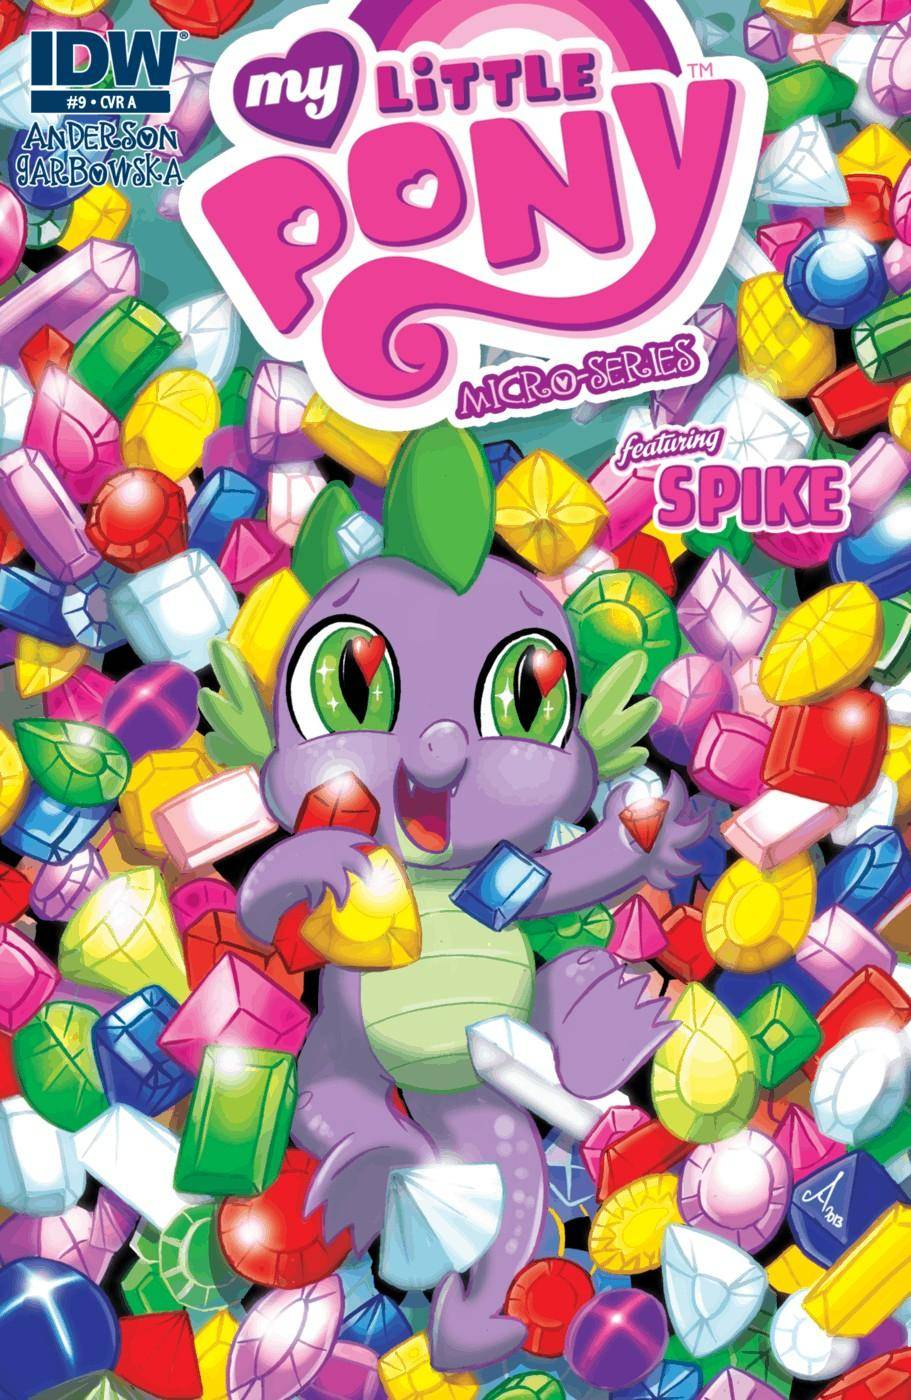 My Little Pony - Micro Series 009 2013 2 covers digital